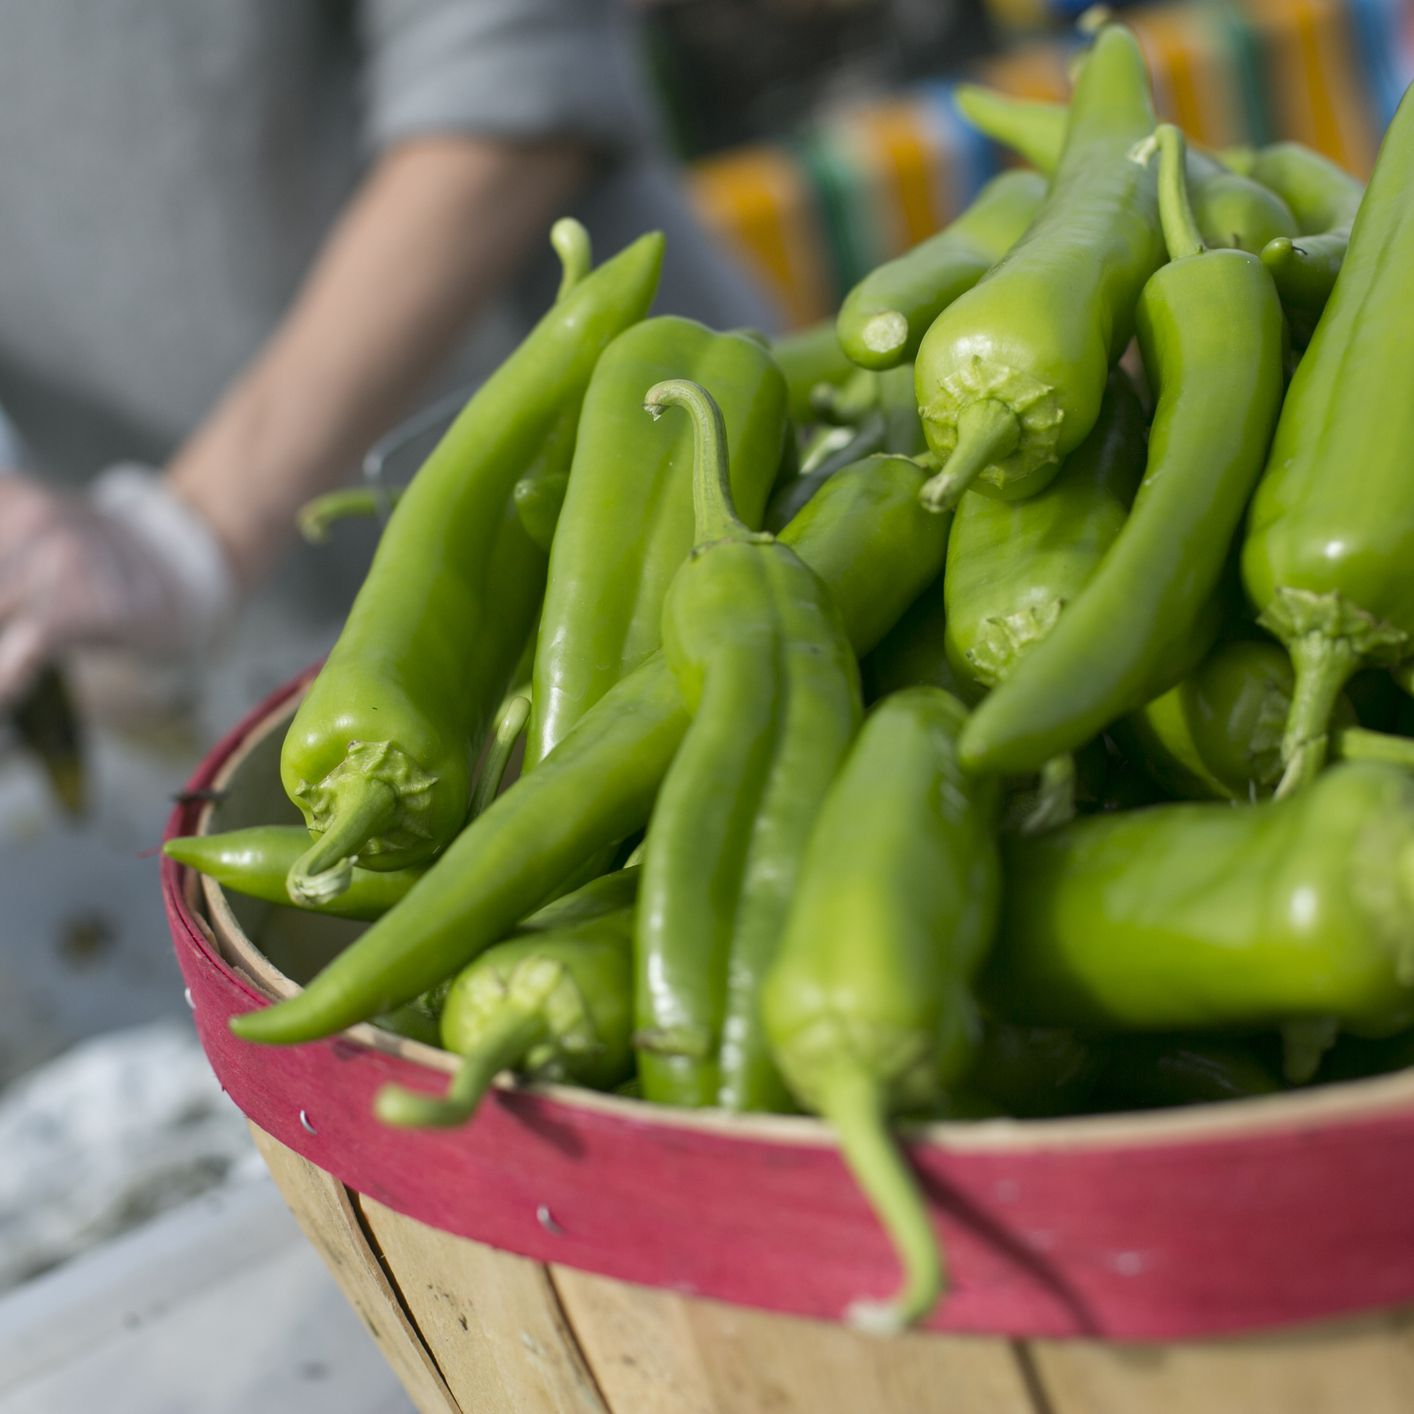 Anaheim Peppers A Mild Versatile California Chile